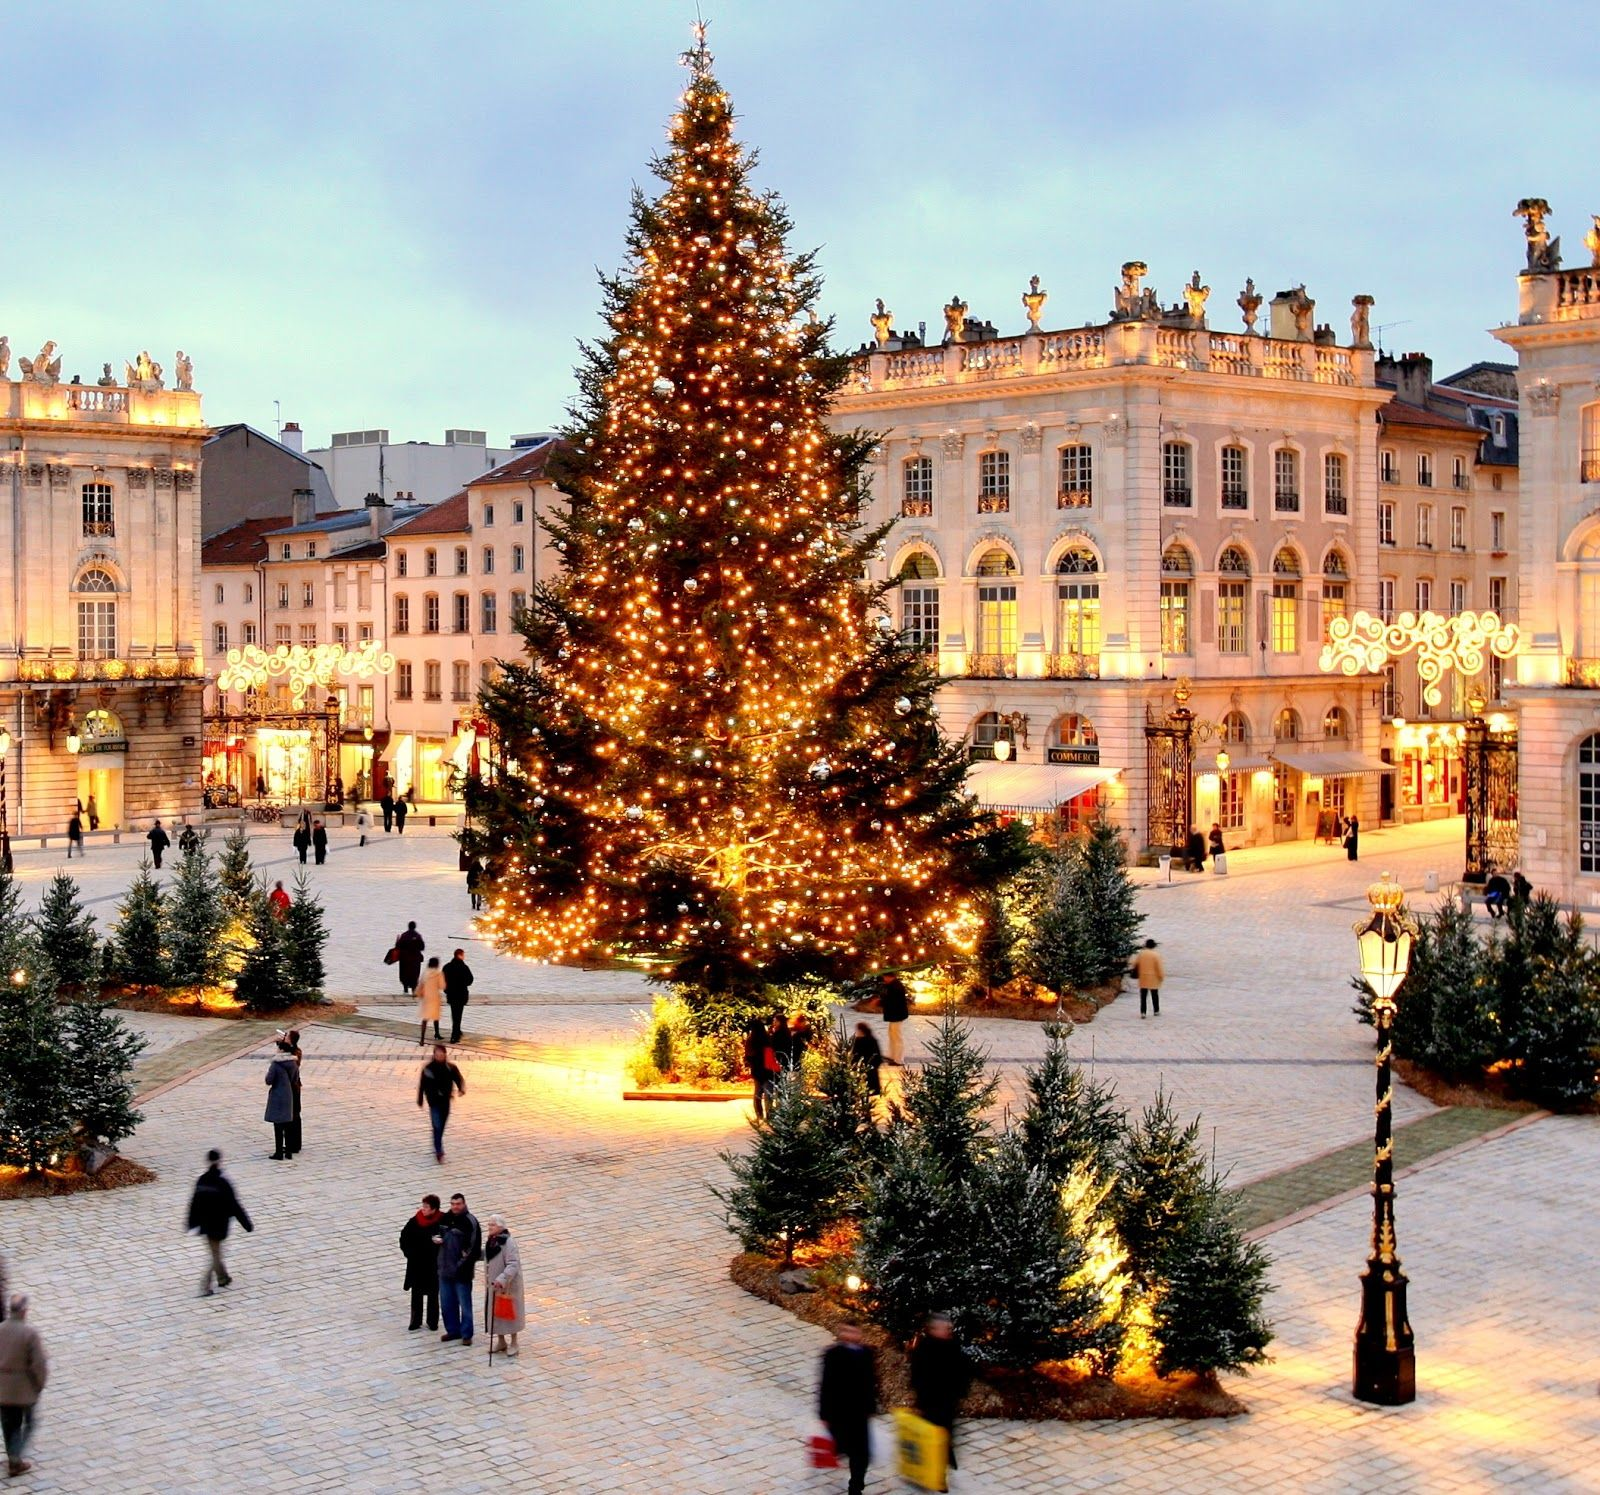 One Of My Favorite Cities Nancy France Near My Hometown And This One Of The Most Stunning Squares In Scenery Merry Little Christmas Oh The Places You Ll Go